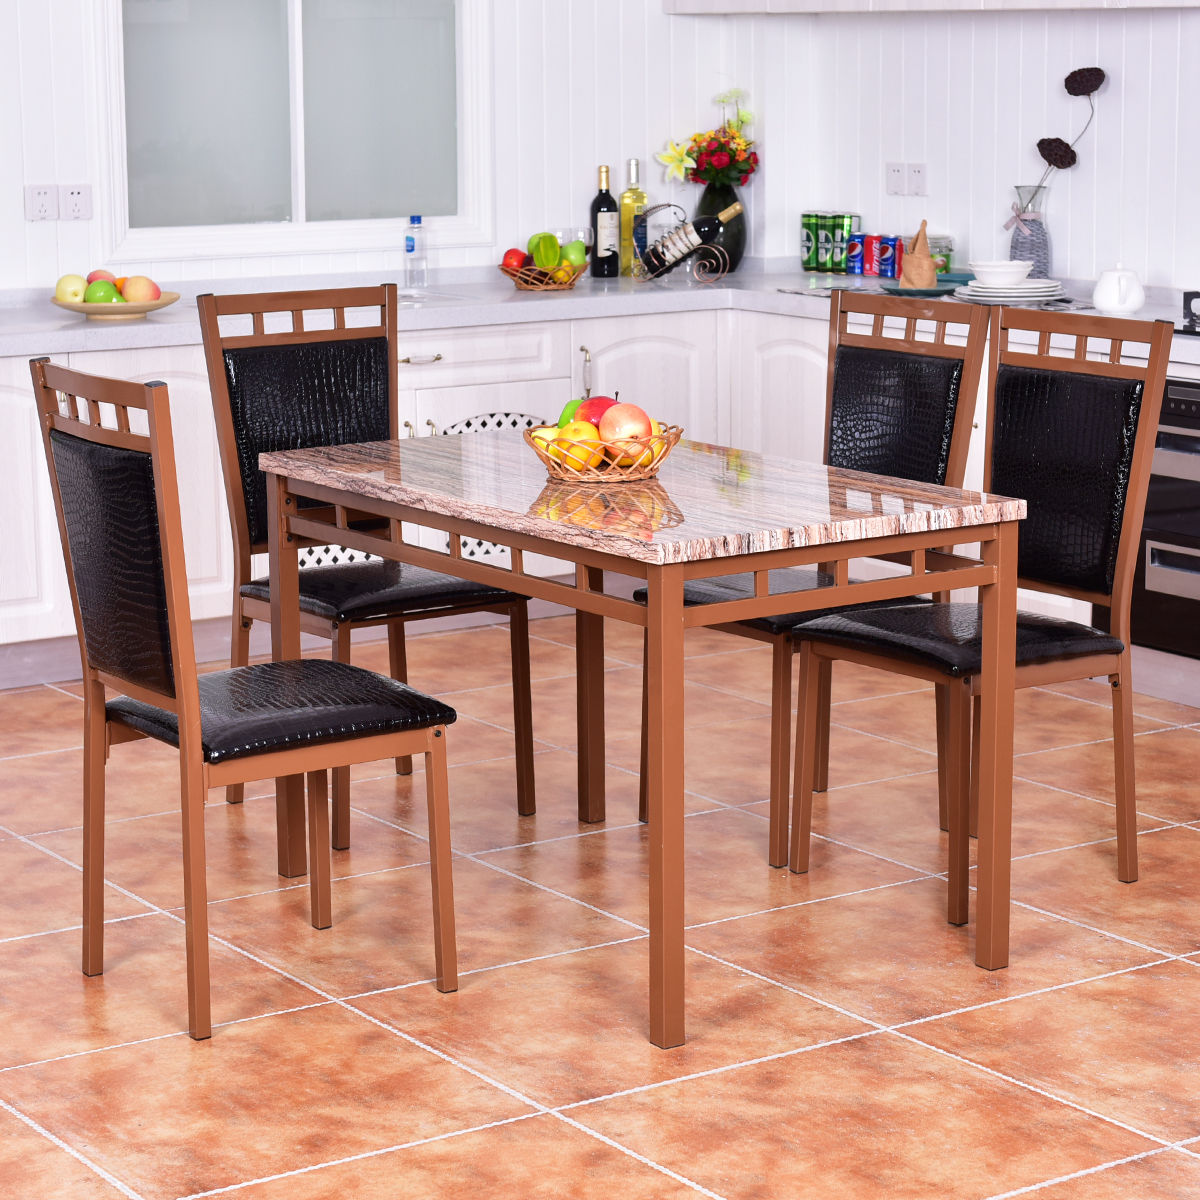 Costway 5 PC Dining Set Faux Marble Table And PU Chairs Home Kitchen Breakfast Furniture